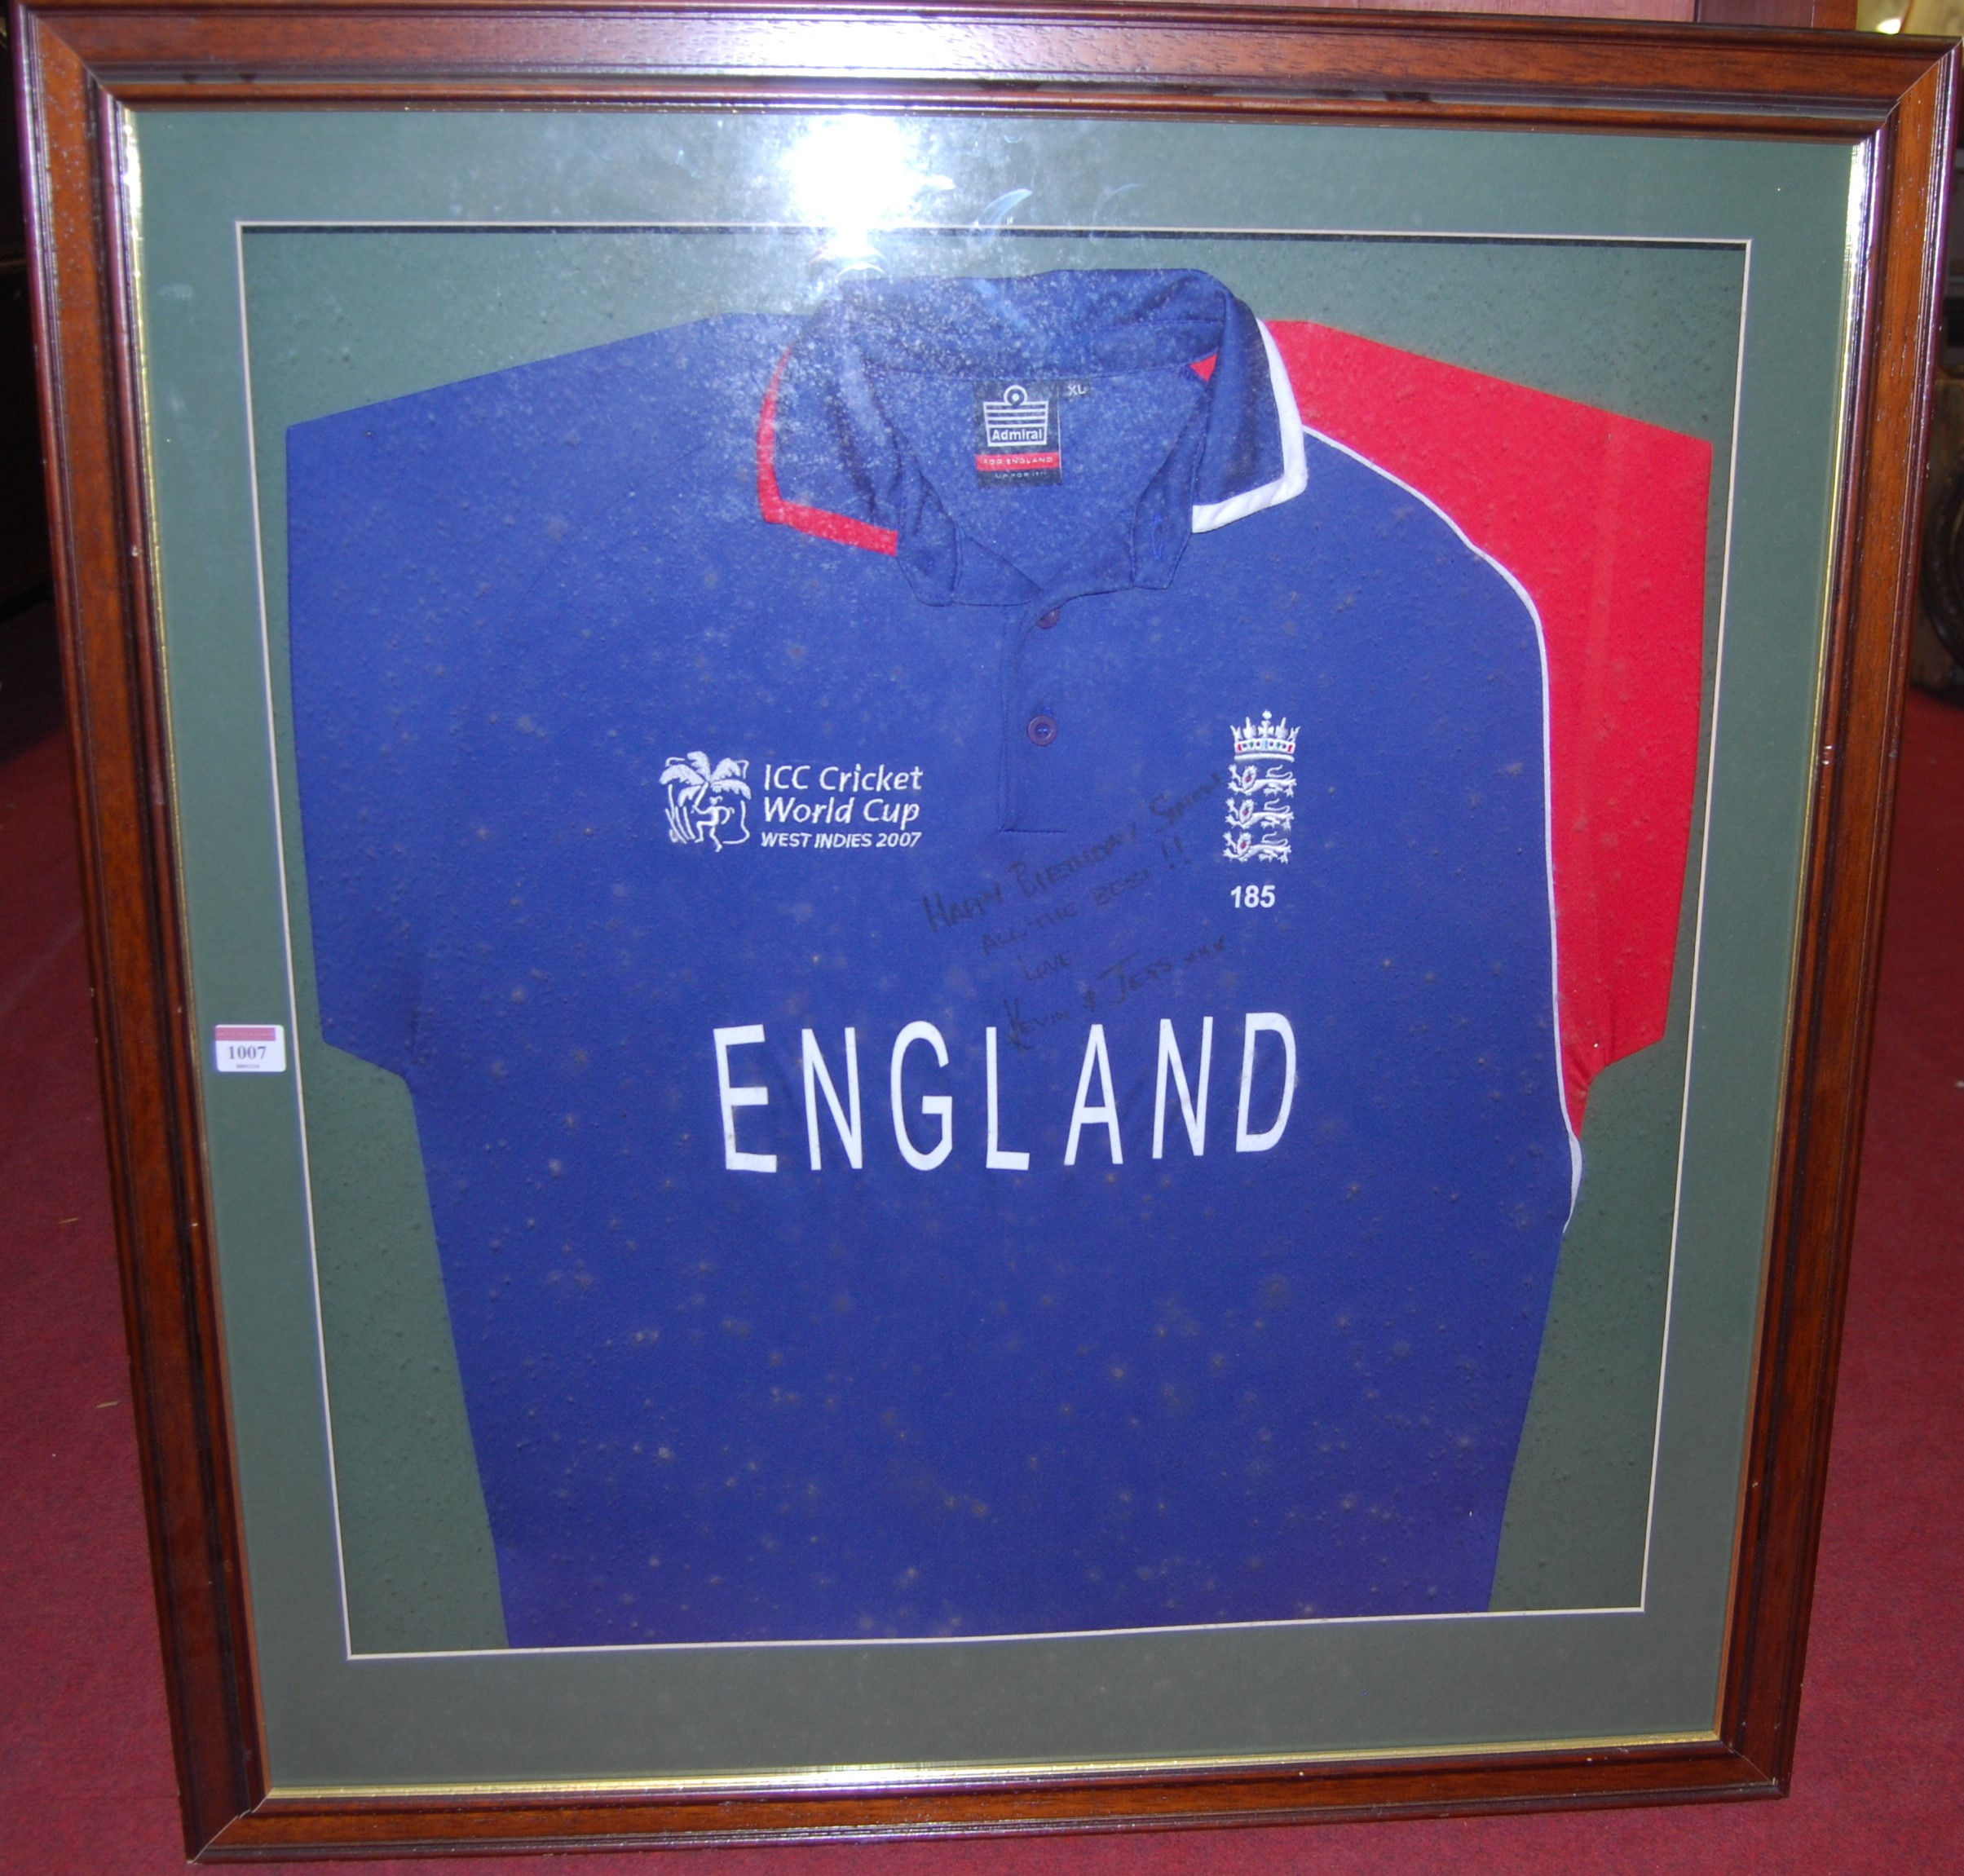 Lot 1007 - A framed England cricket shirt from the ICC Cricket World Cup held in the West Indies 2007,